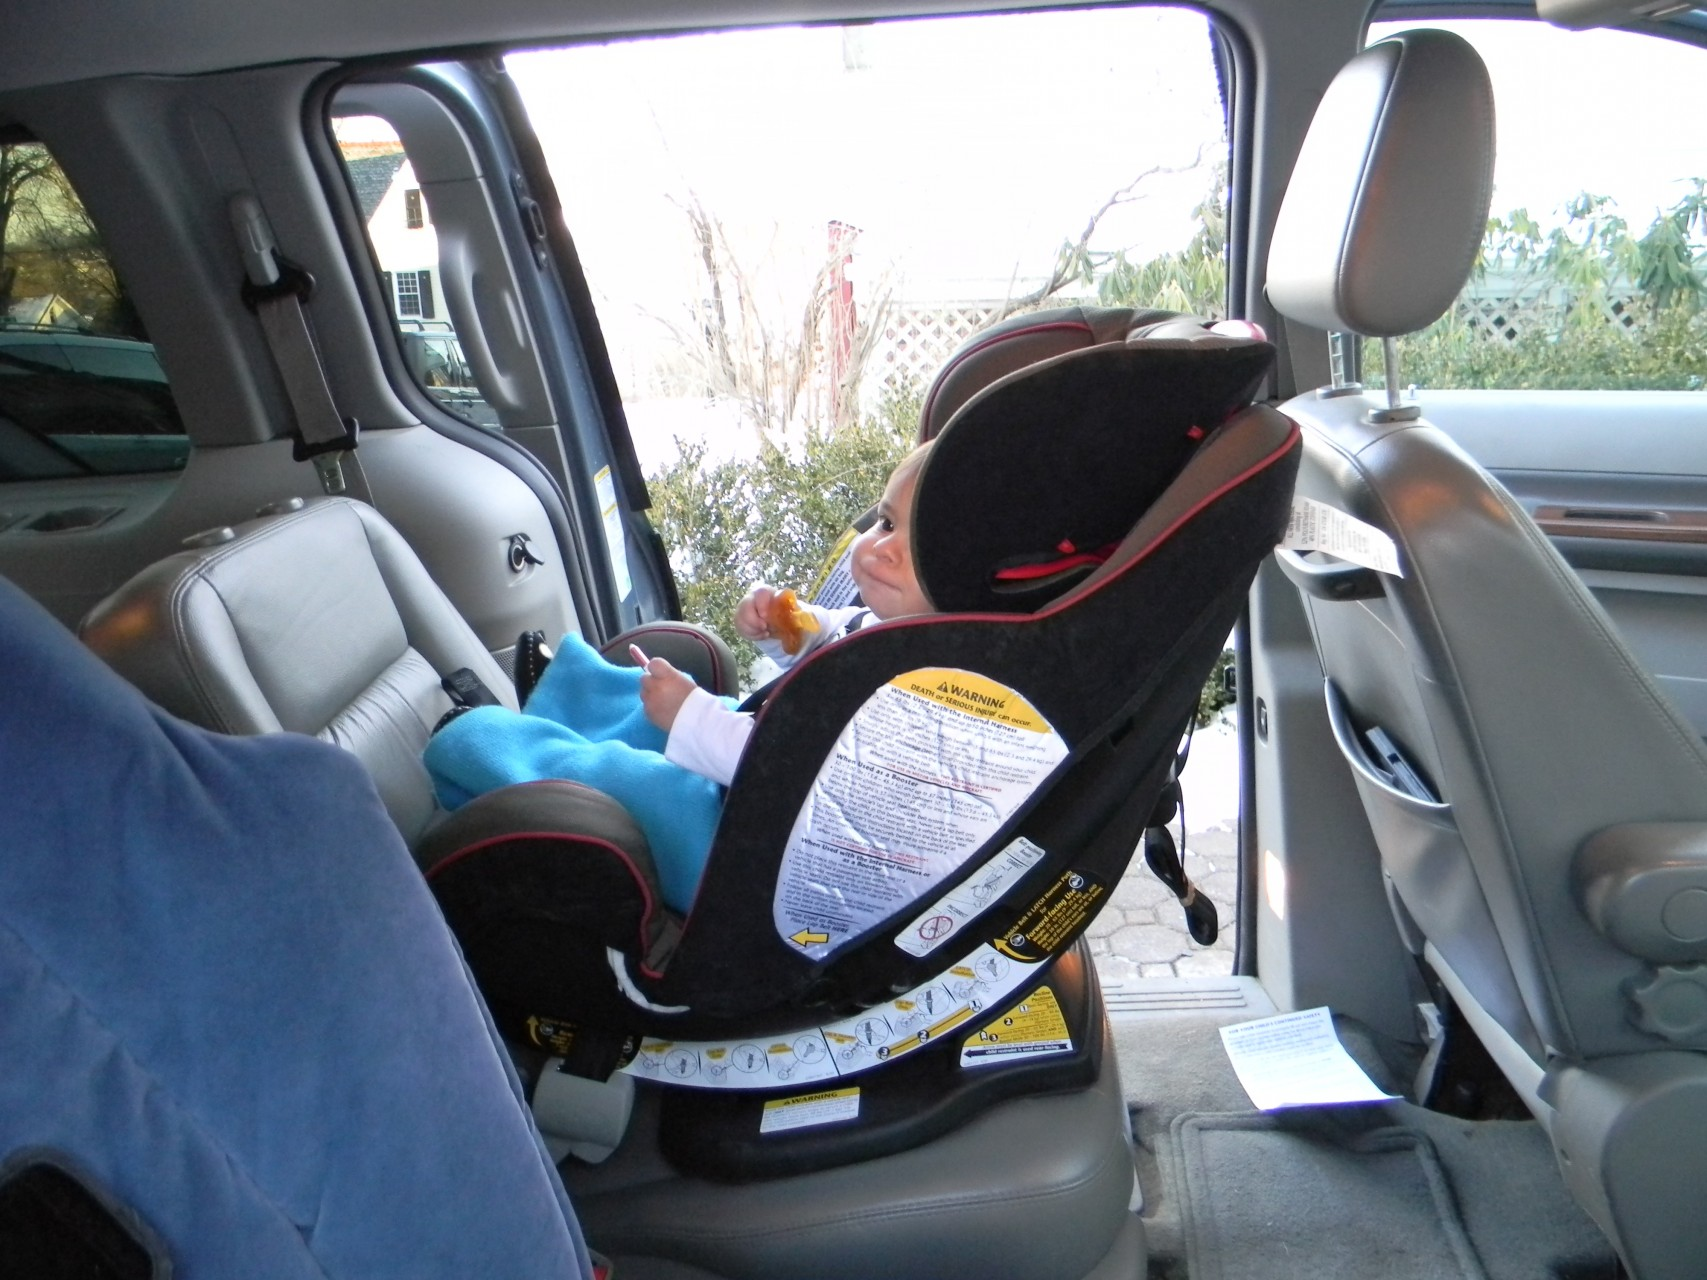 Graco nautilus 3 in 1 multi use car seat - Rear Facing Growing Room Comparison Note Headrests Are Not Adjusted Correctly For This Child But Are Positioned In The Top Rf Position On Both Seats To